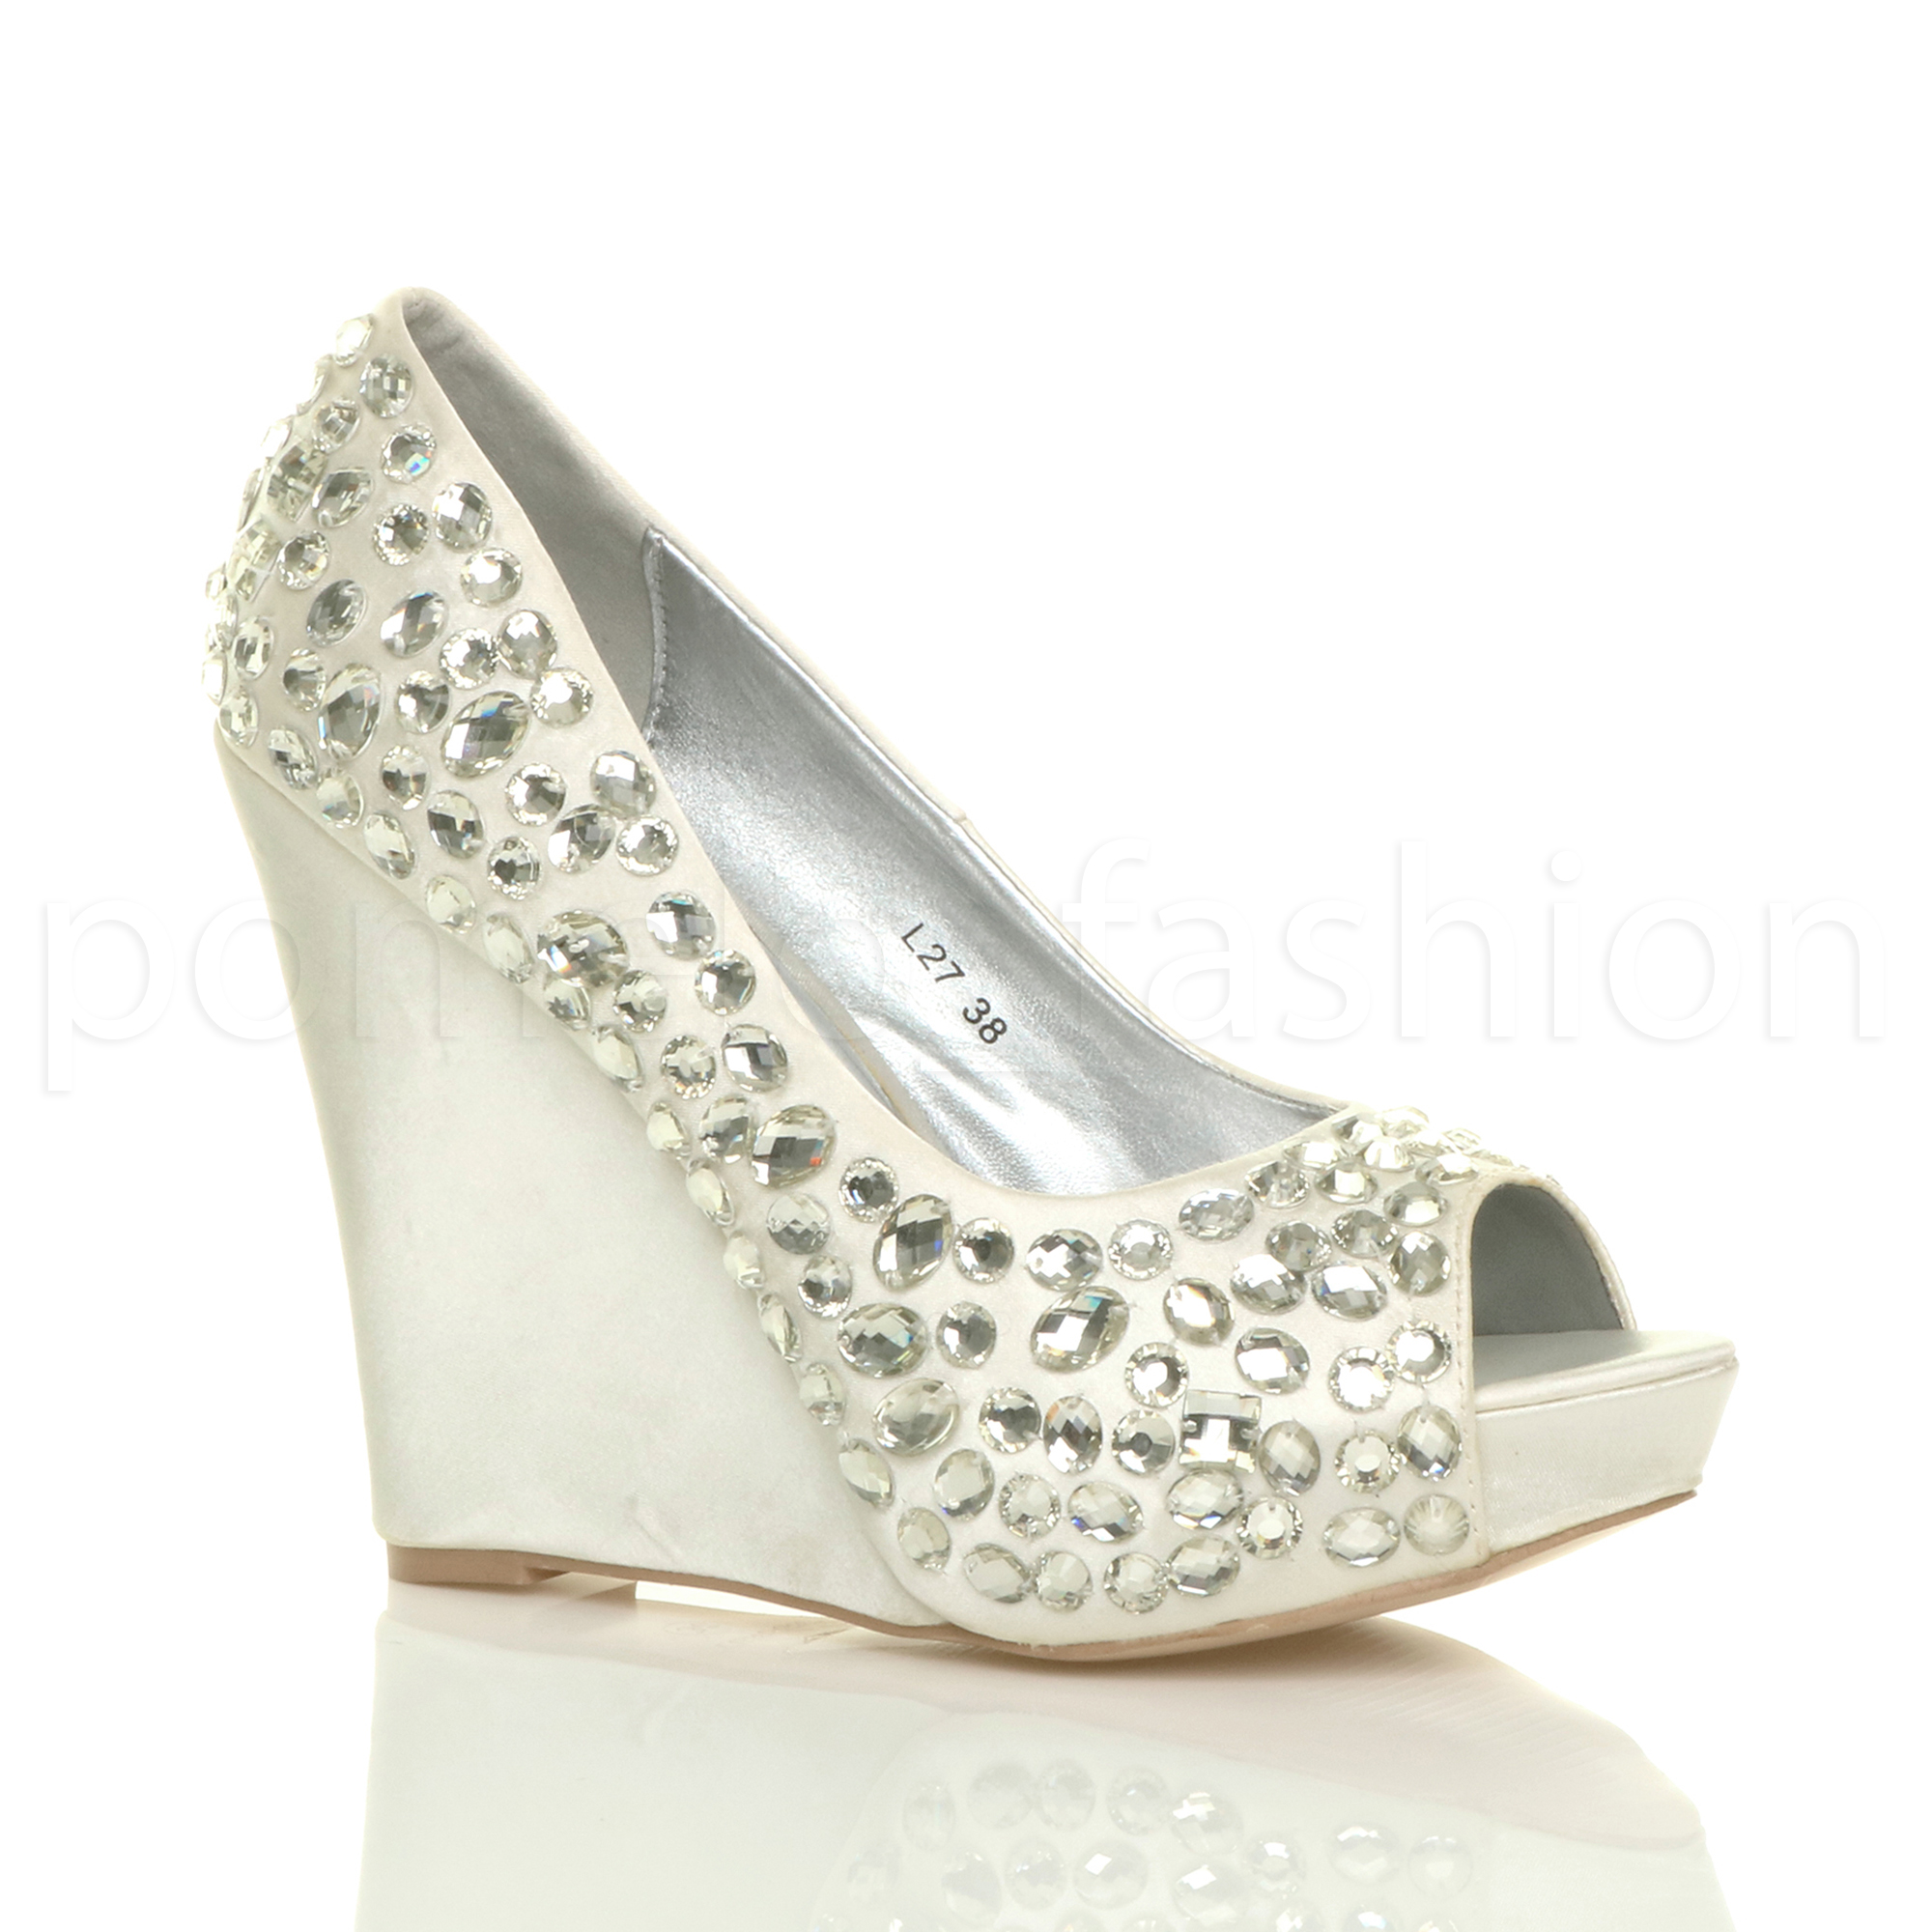 WOMENS WEDDING PLATFORM WEDGE LADIES BRIDAL SANDALS EVENING PROM SHOES SIZE | EBay